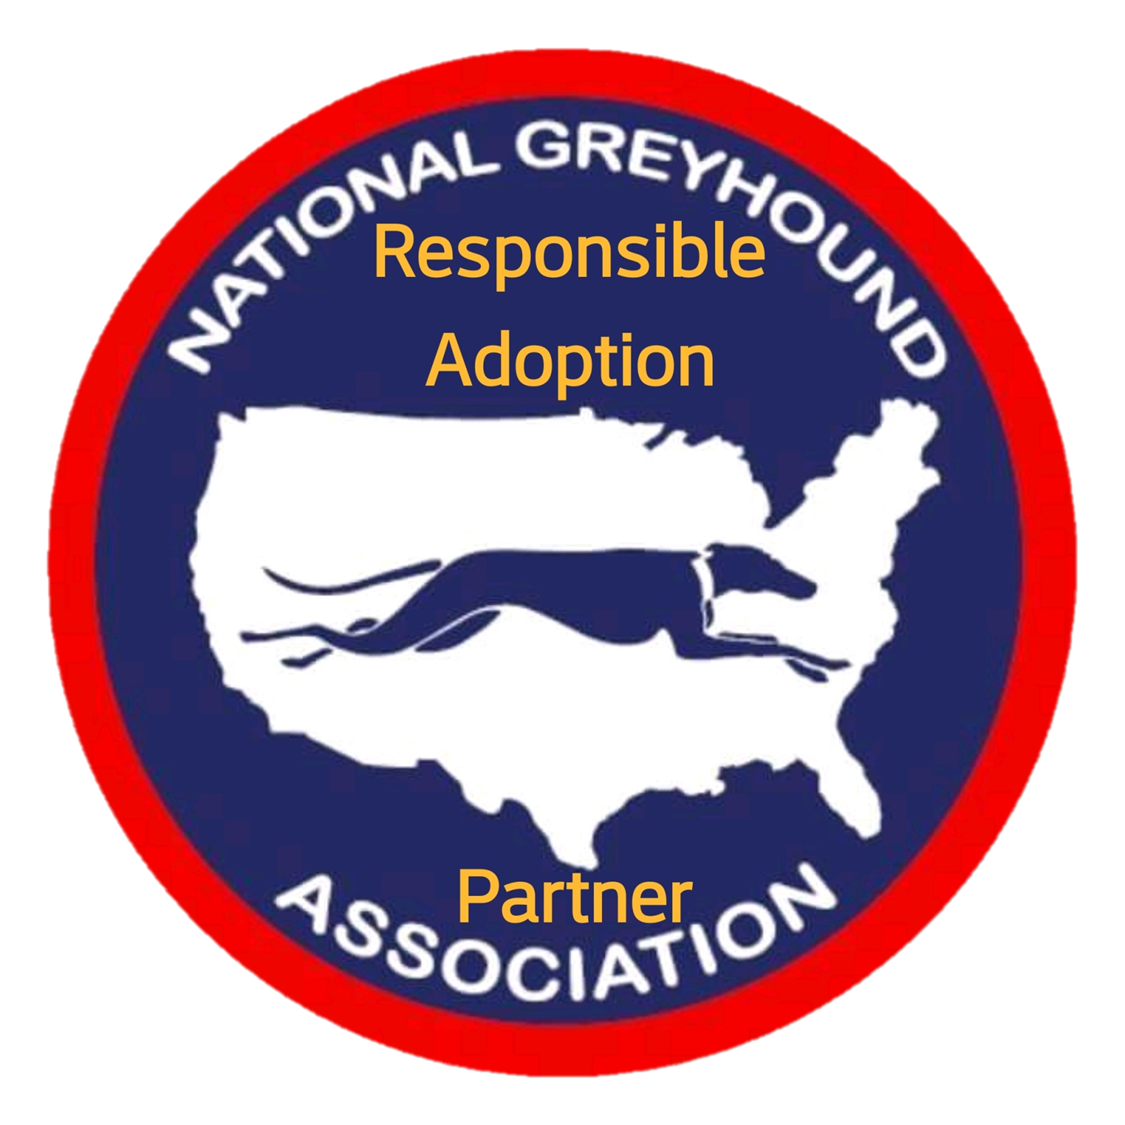 adoption partner logo